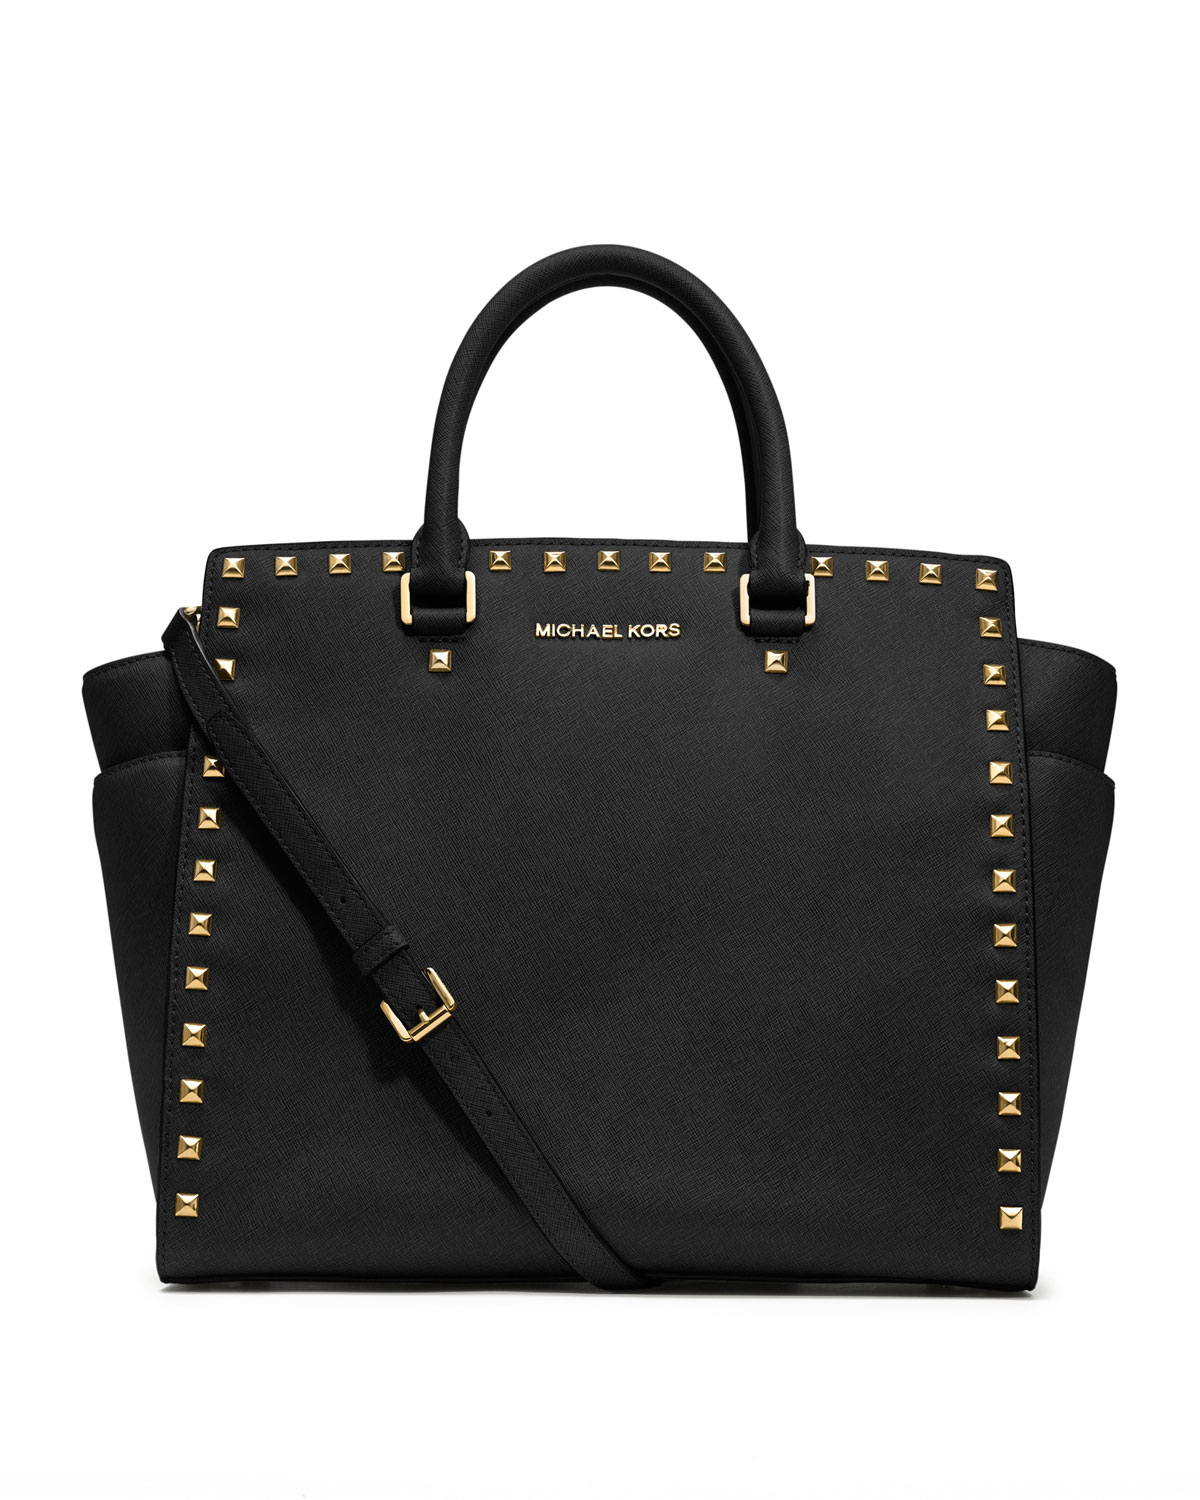 michael kors large selma studded saffiano tote in black lyst. Black Bedroom Furniture Sets. Home Design Ideas